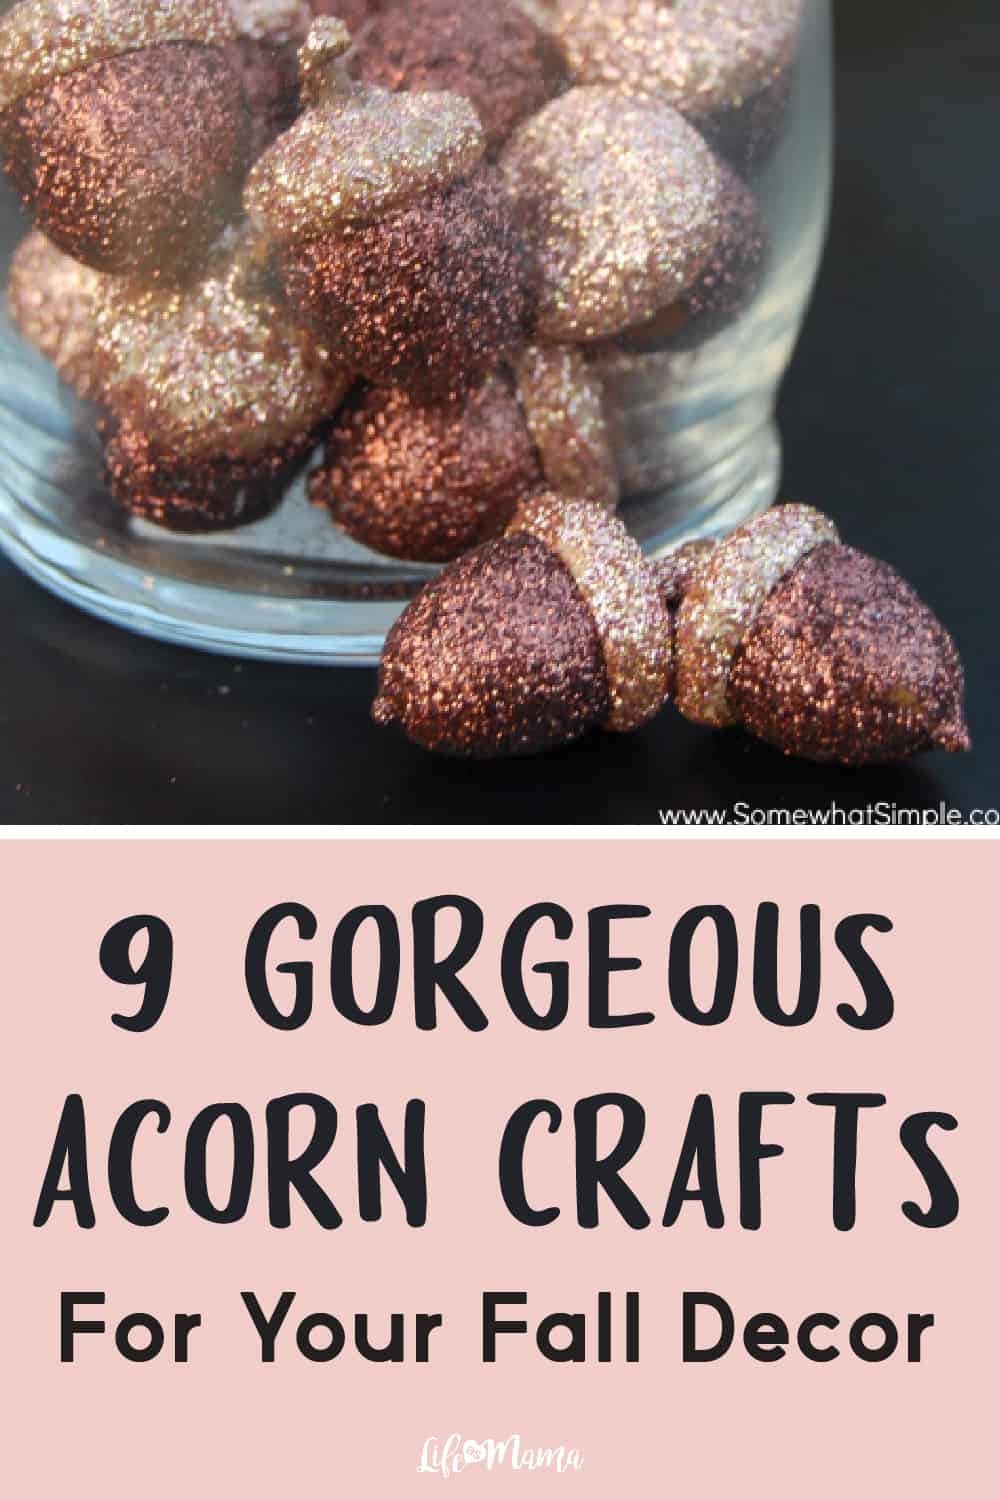 9 Gorgeous Acorn Crafts For Your Fall Decor